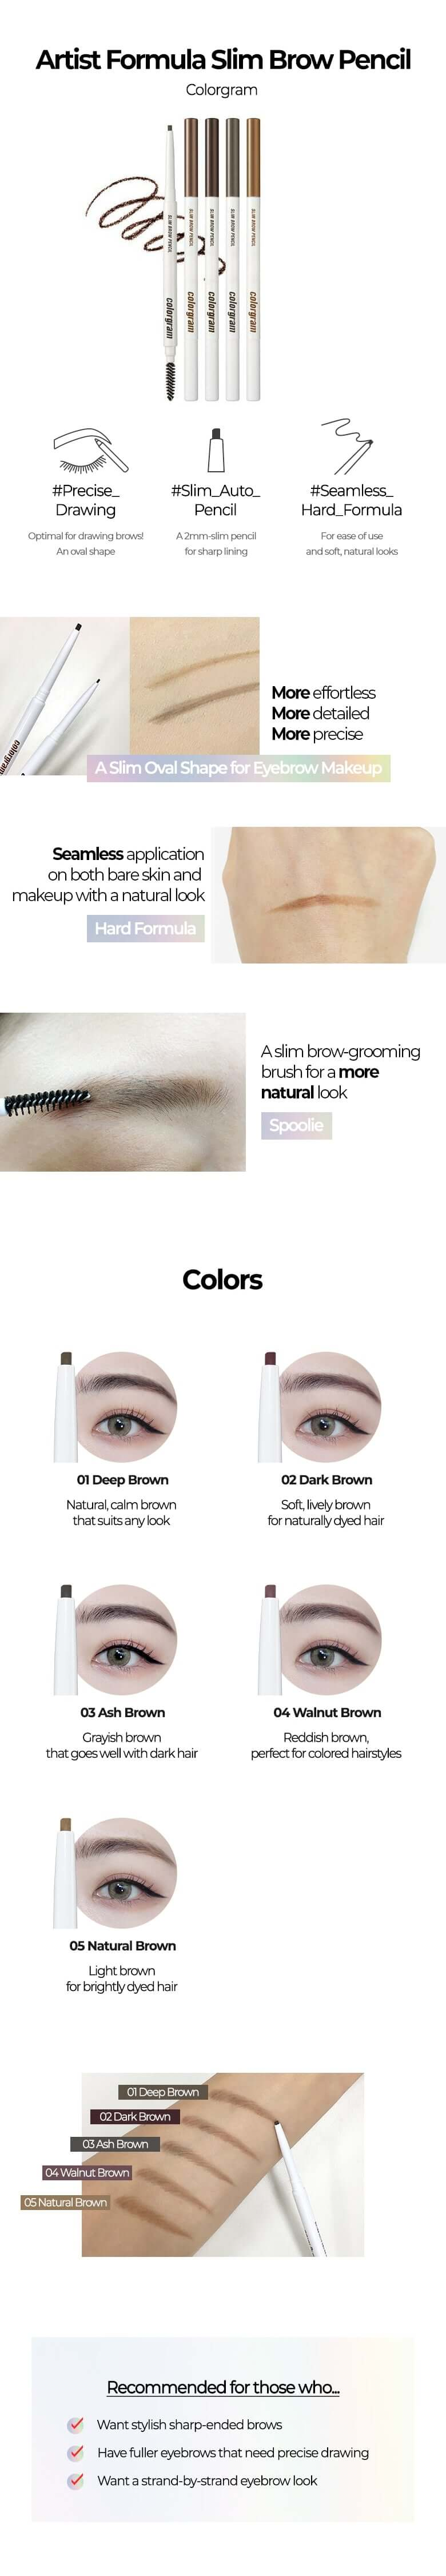 True Beauty / Artist Formula Slim Brow Pencil